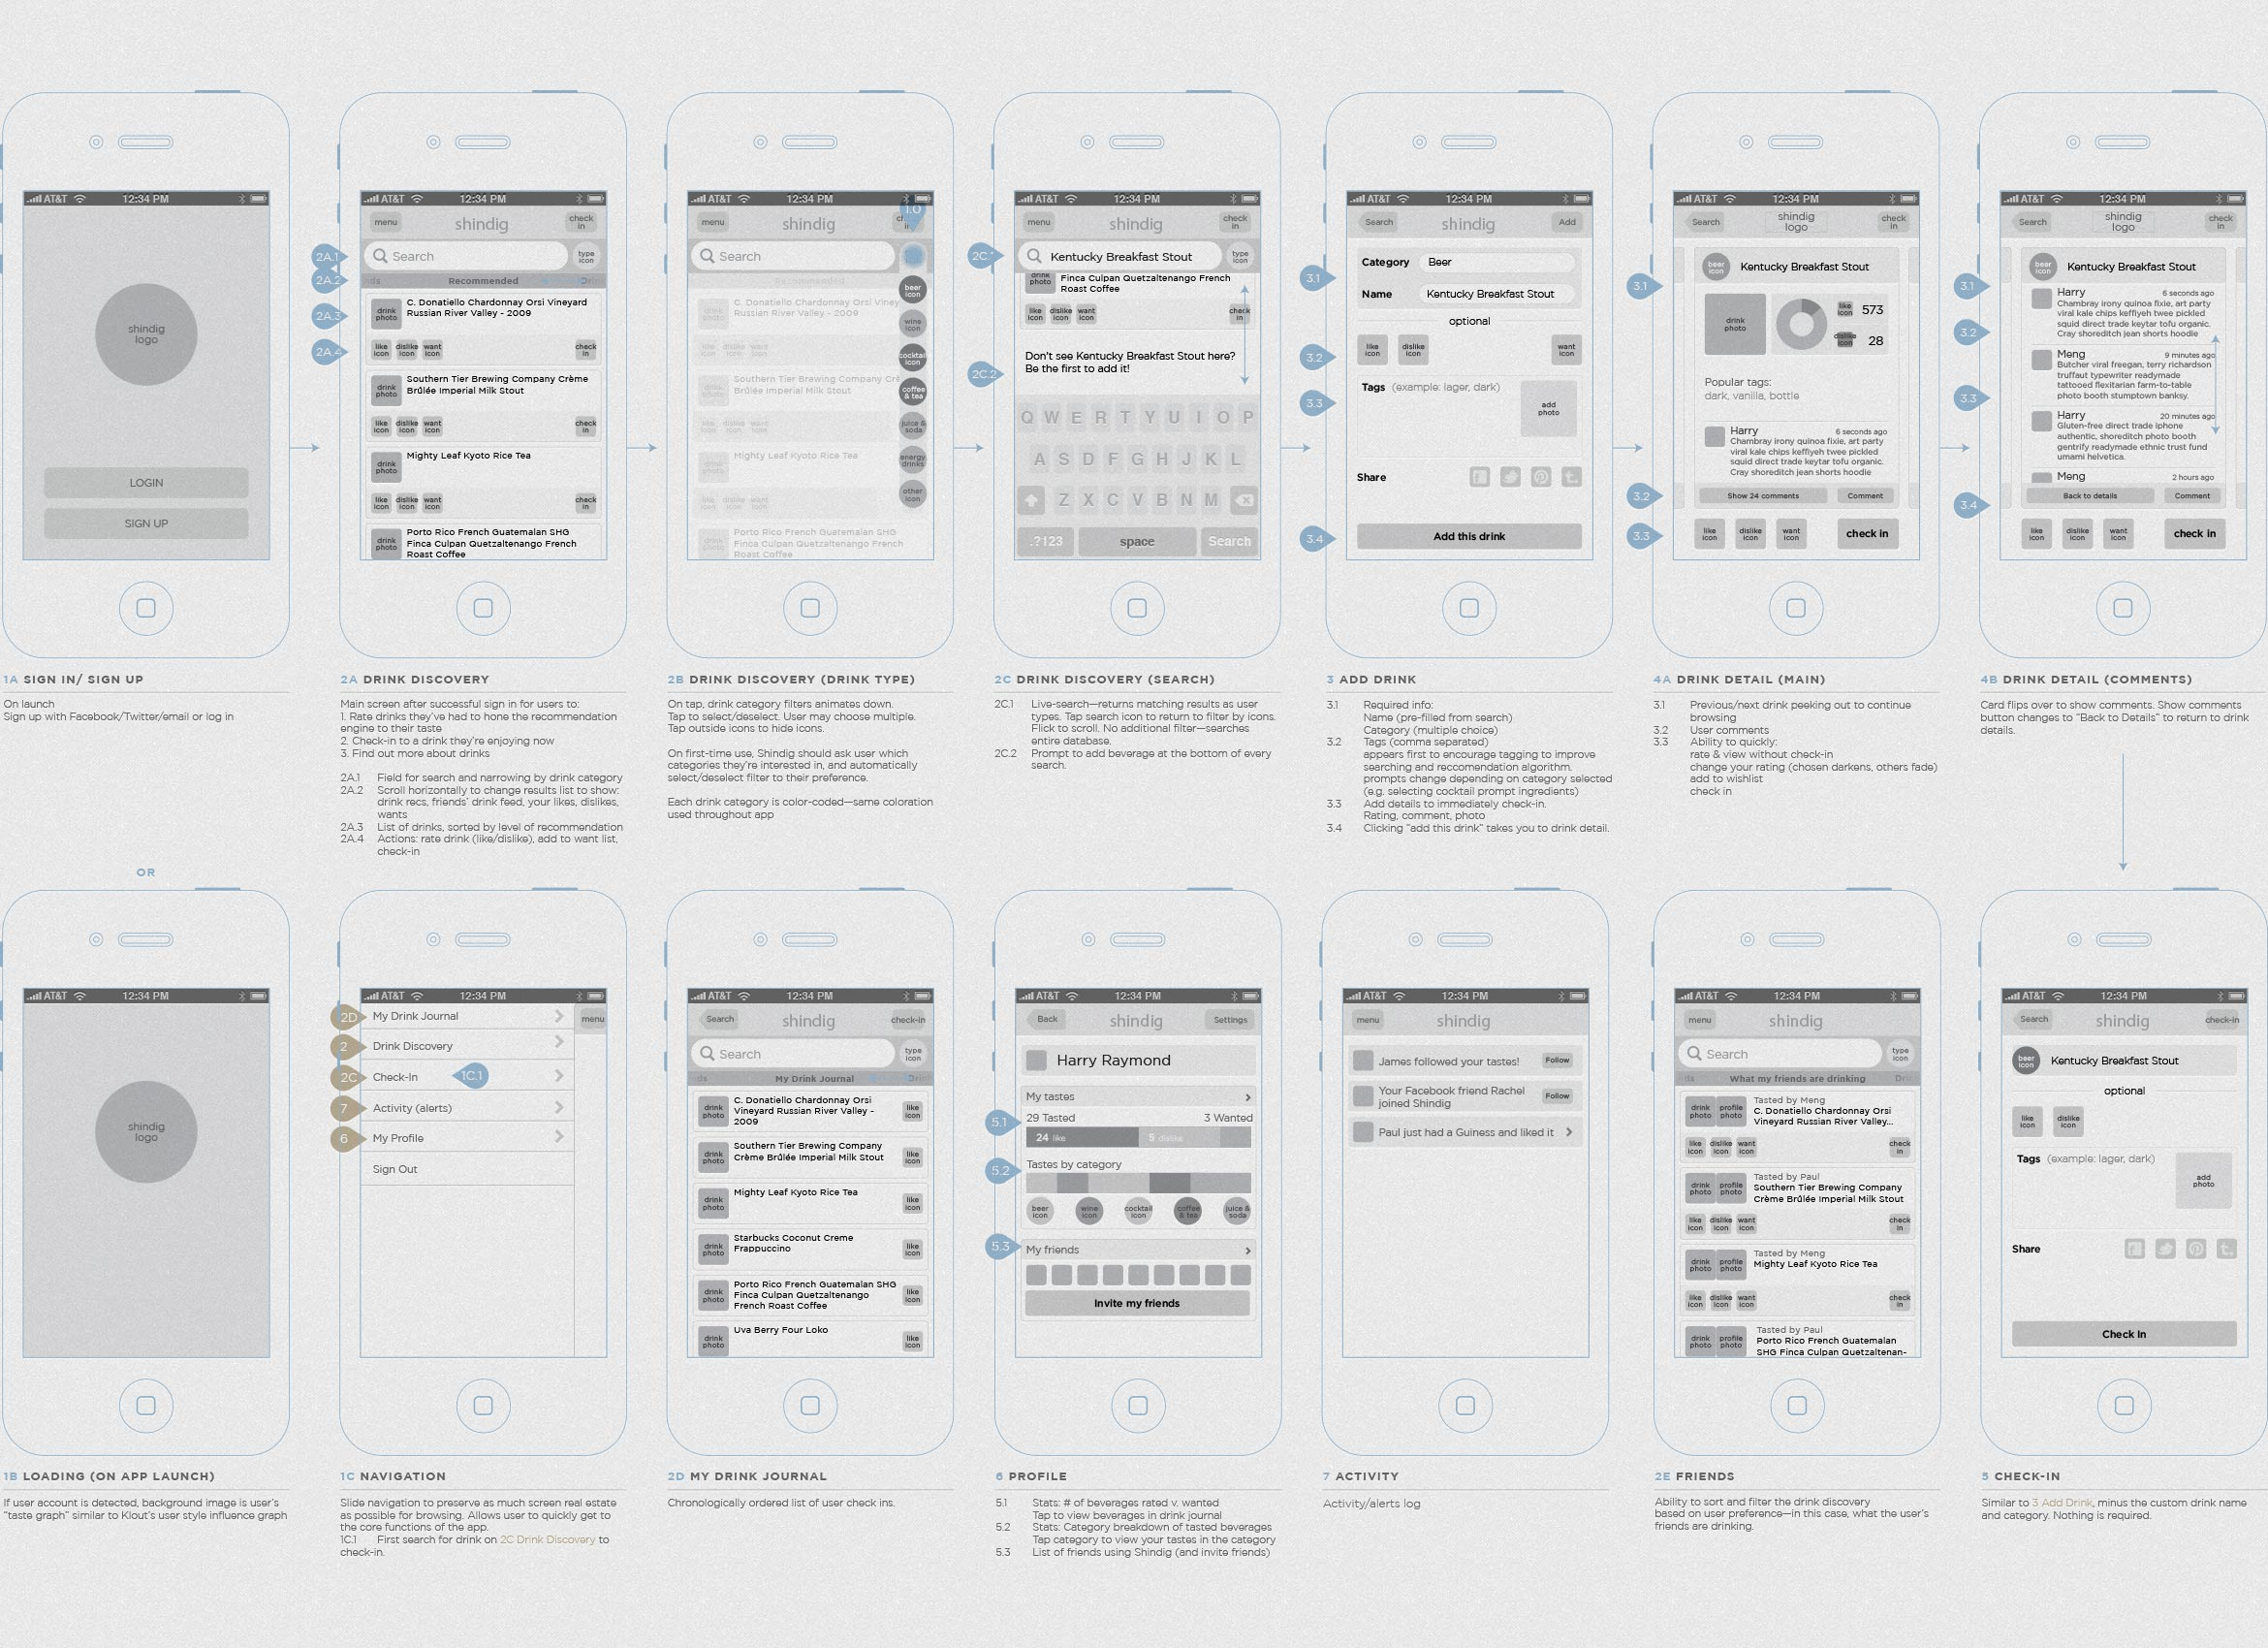 meng-he-shindig-app-wireframe@2x